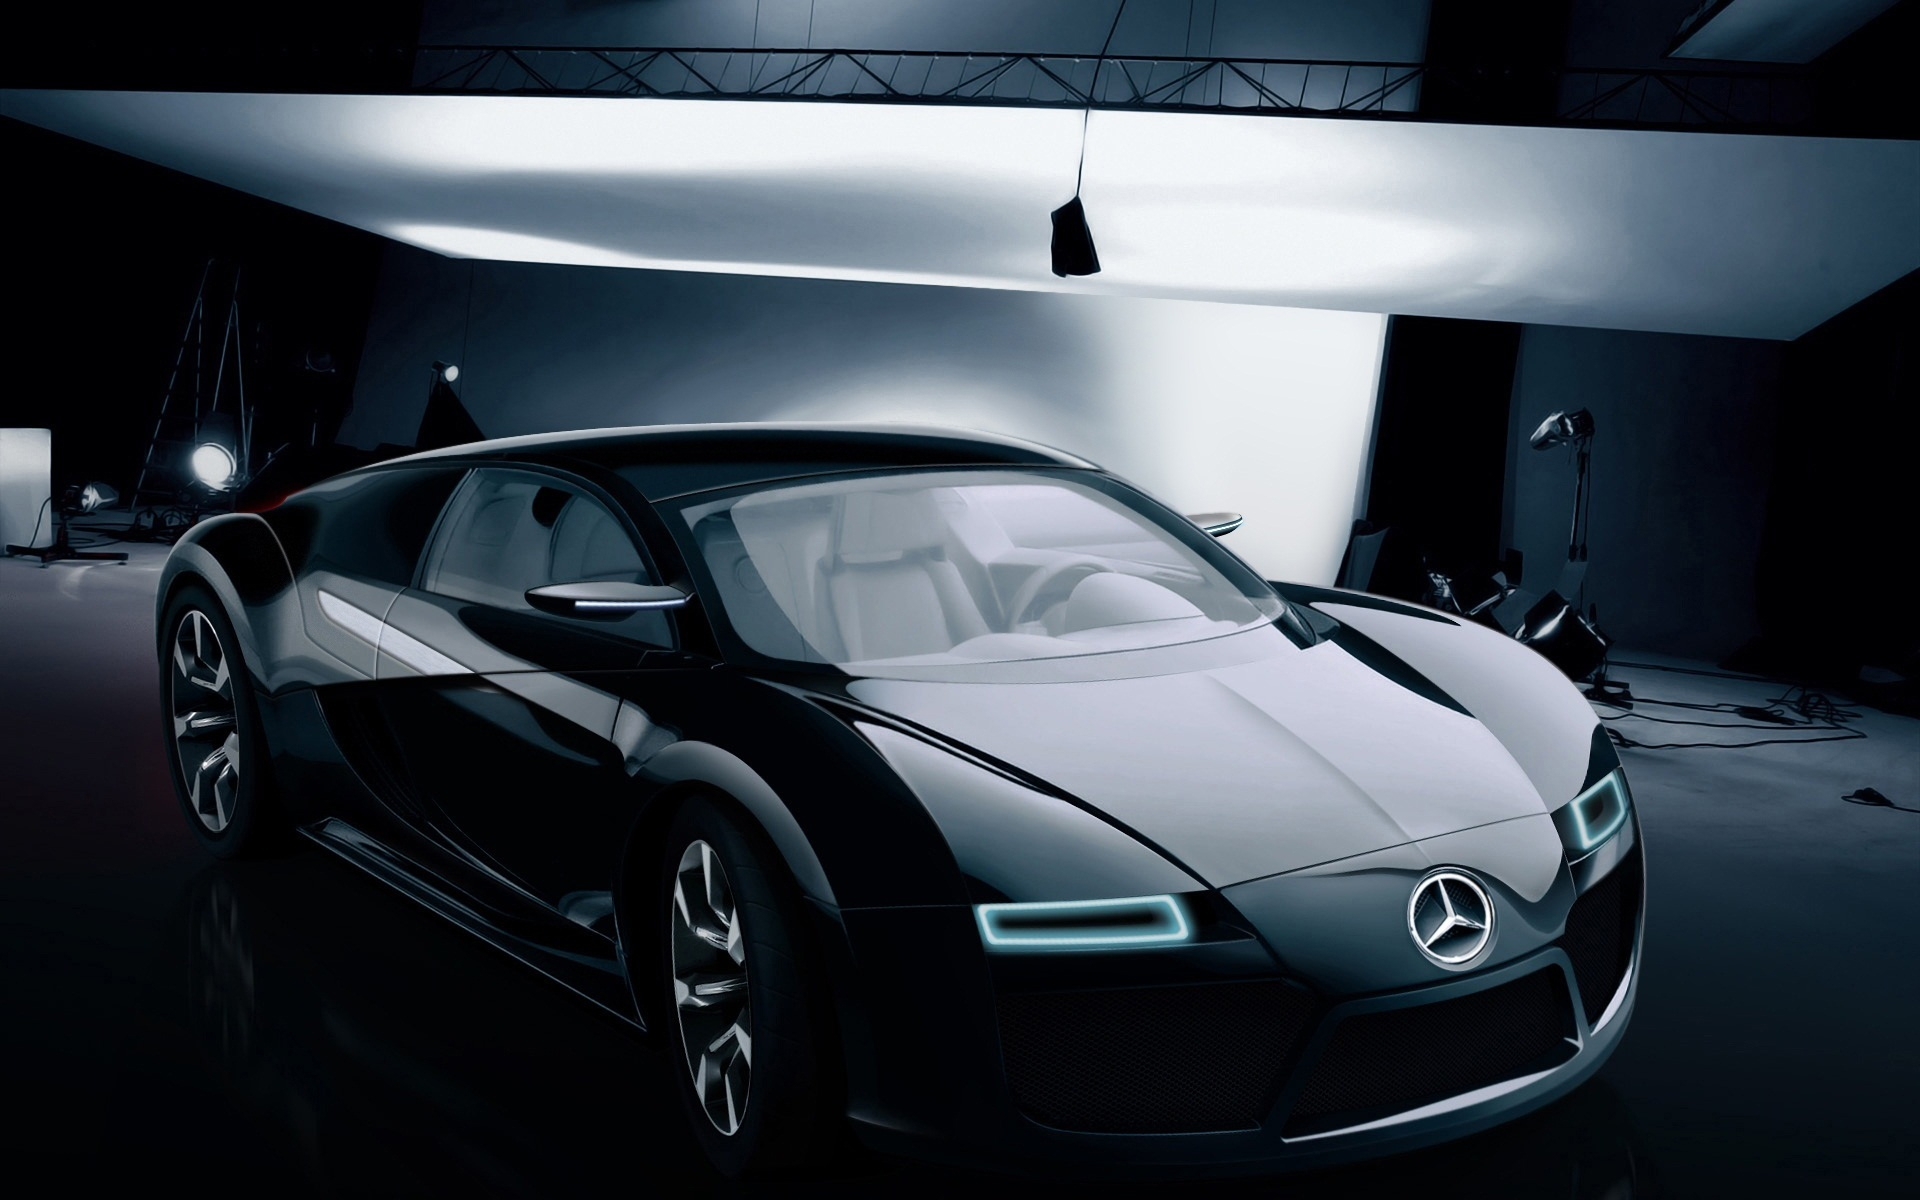 Mercedes benz bugatti concept wallpaper hd car for Autos mercedes benz